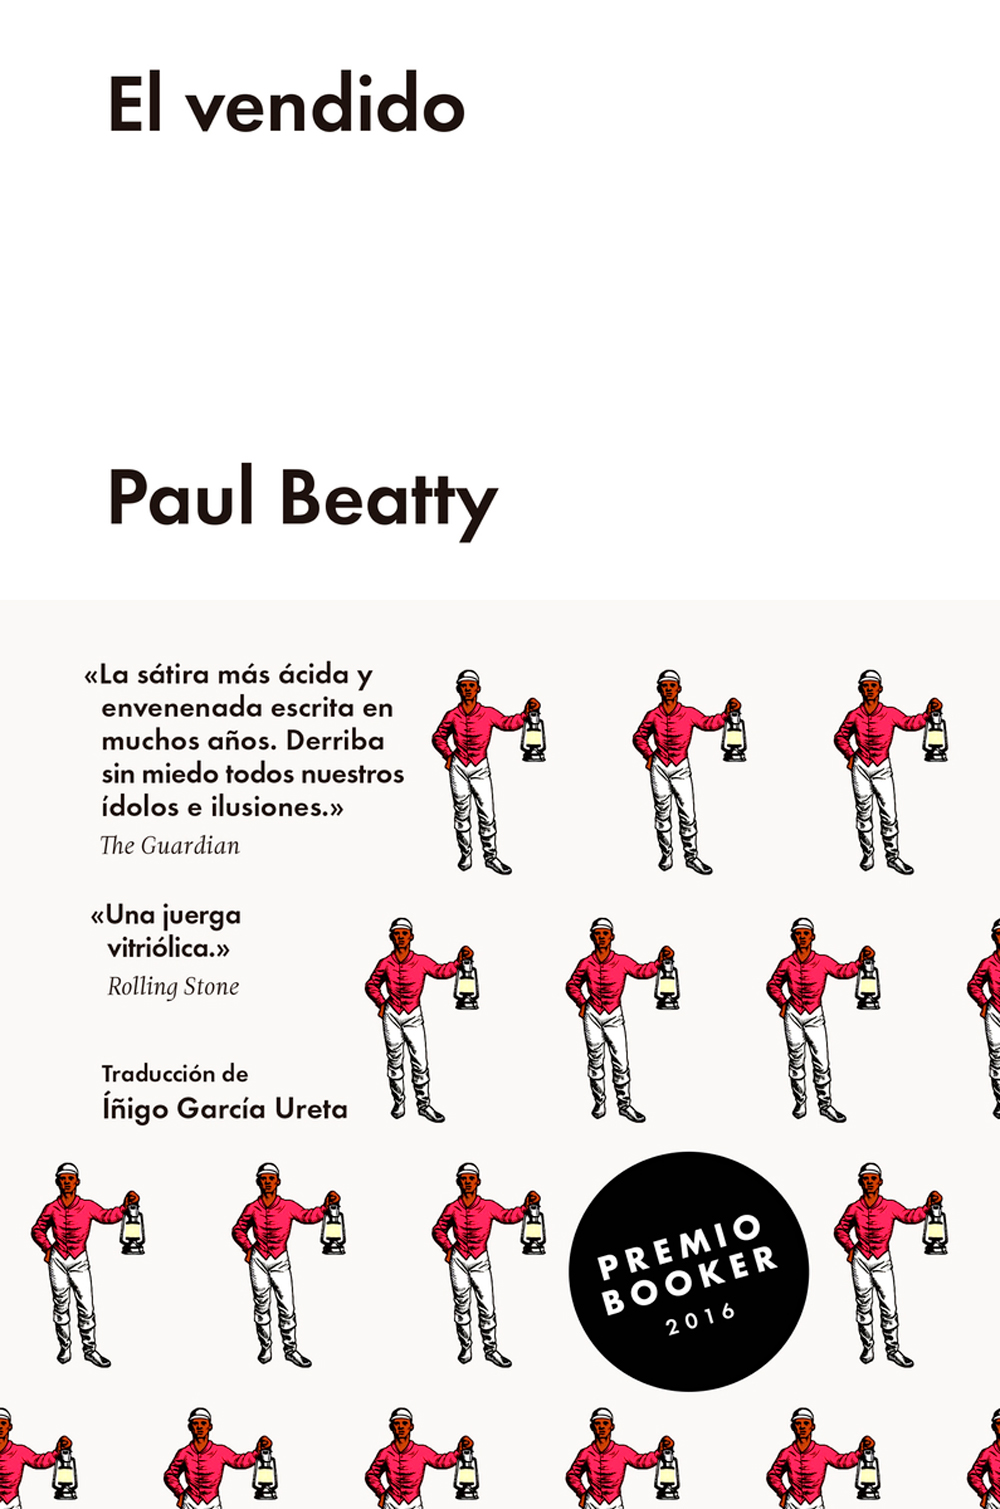 El vendido, de Paul Beatty